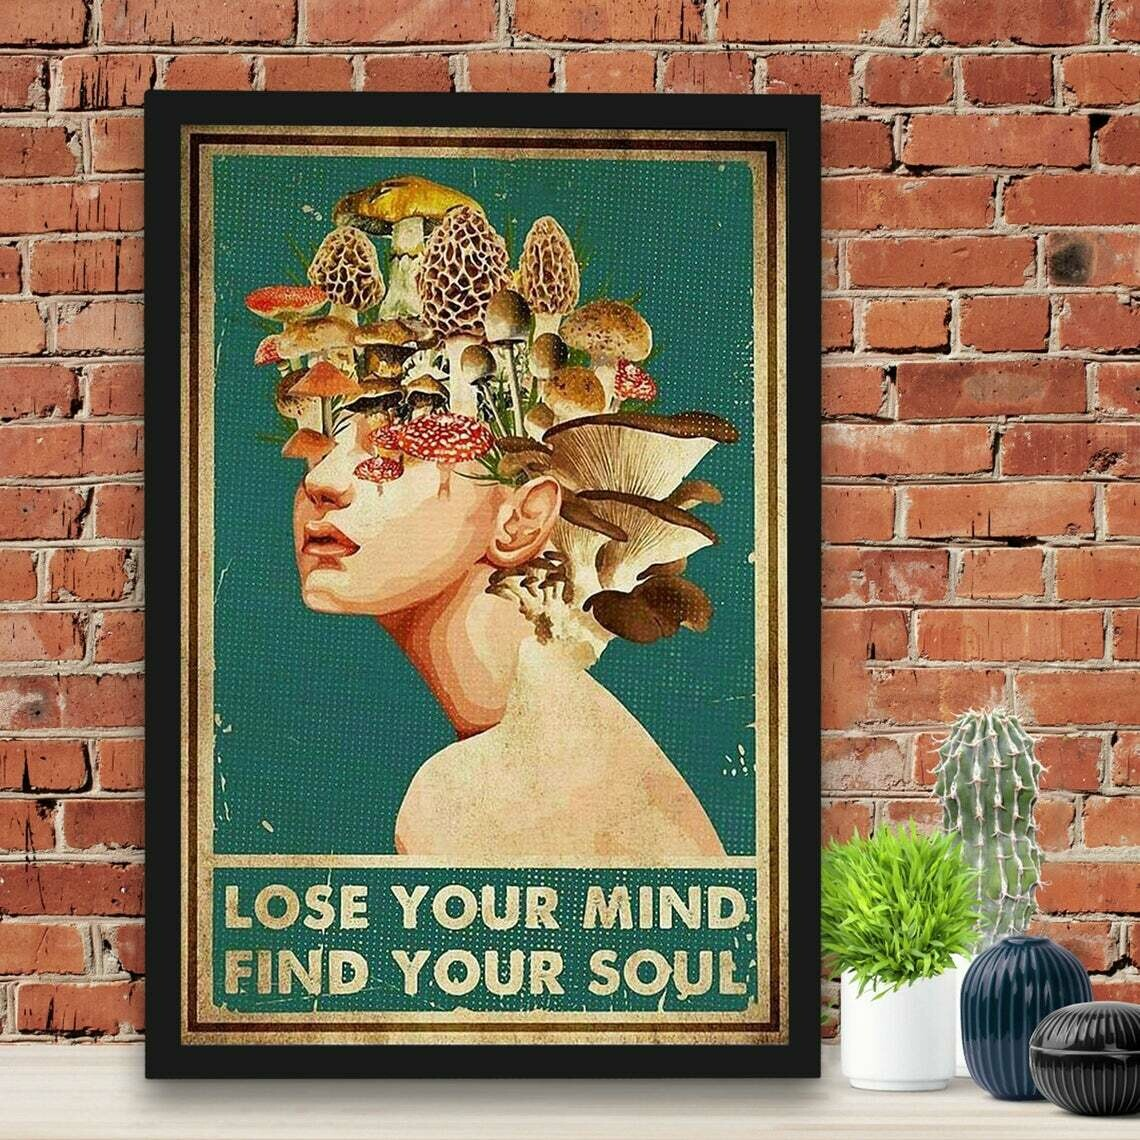 Mushroom Girl Lose Your Mind Find Your Soul Poster, Enjoy Yourself Poster, Loving Yourself Poster, Gift Poster For Daughter Mom Bestie